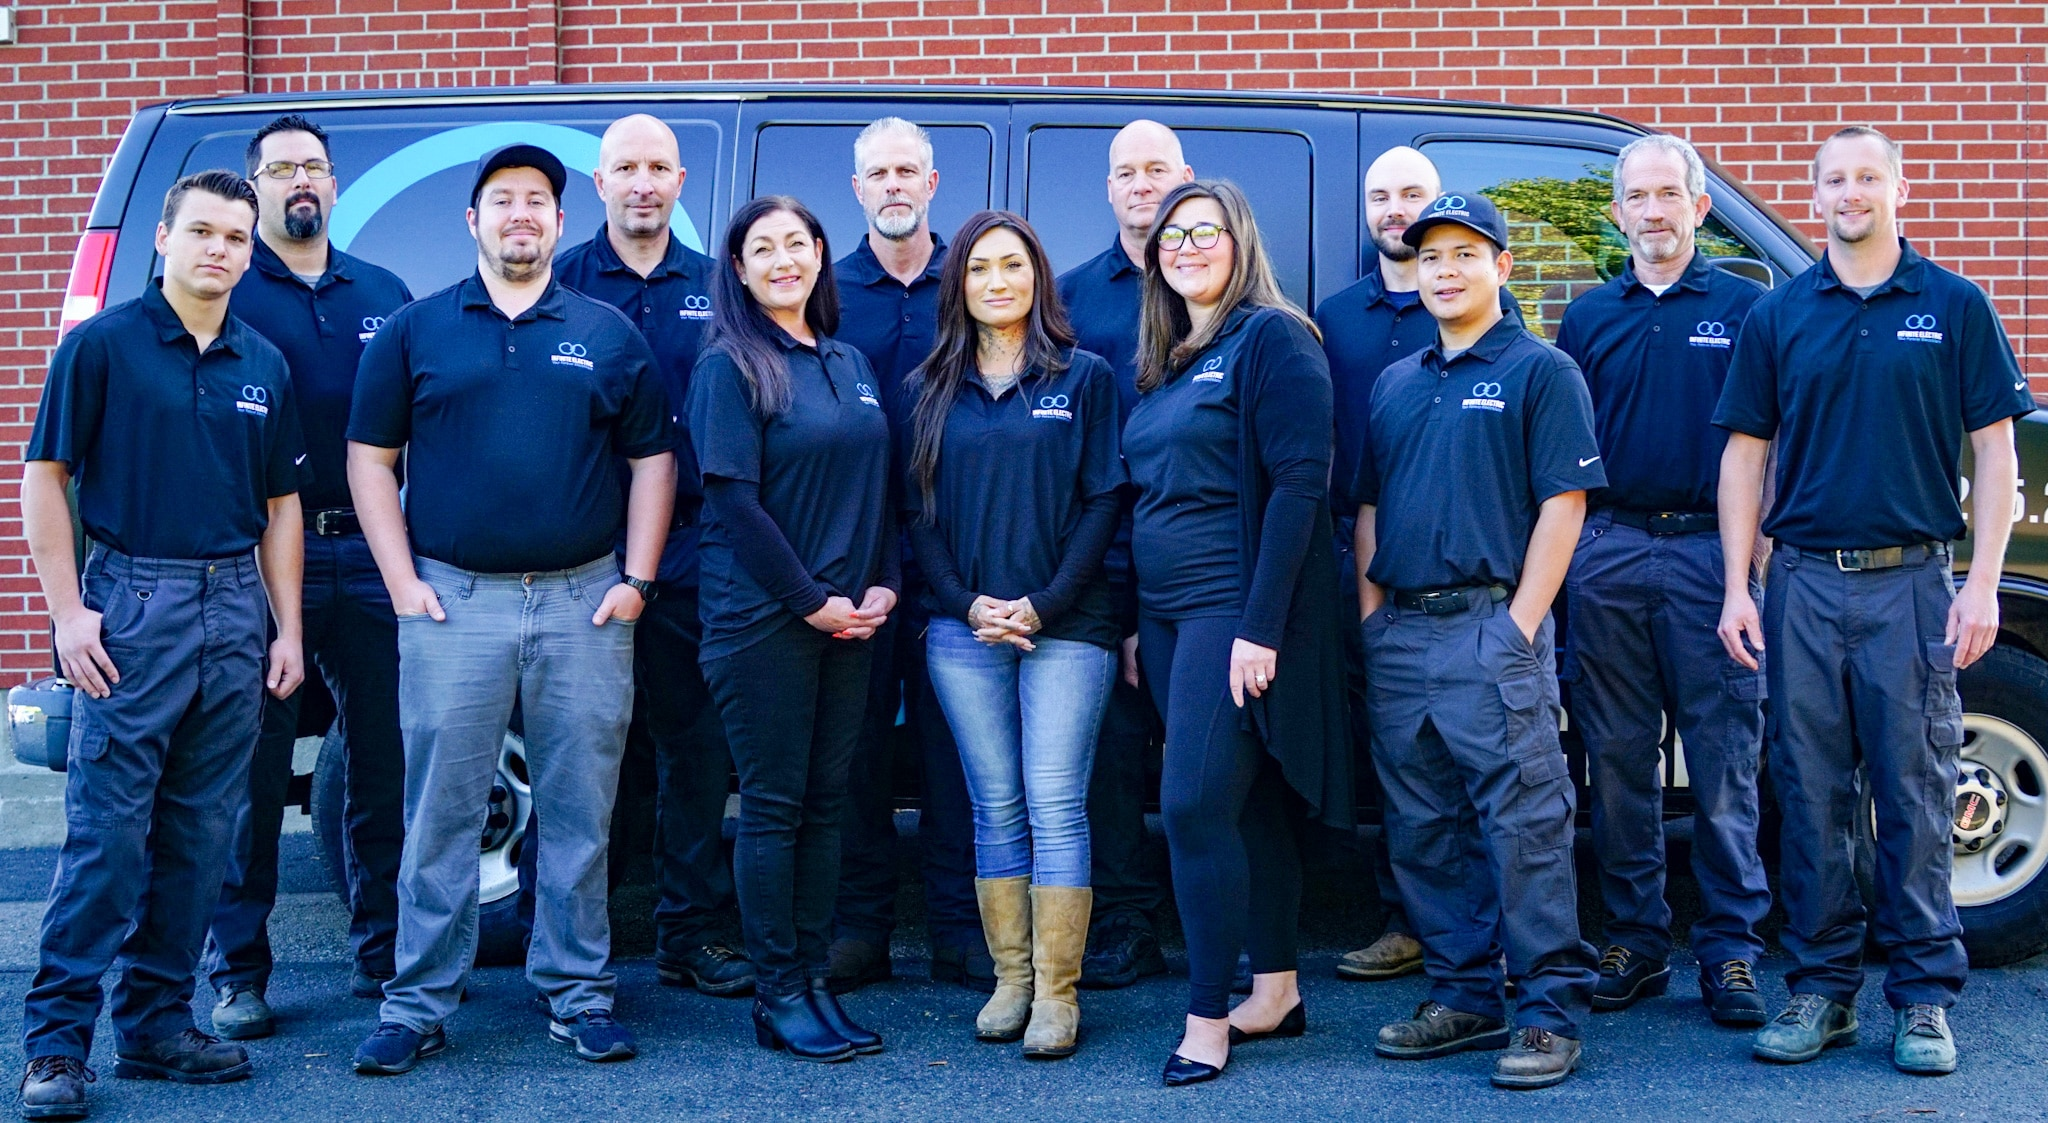 The full team of electricians at Infinite Electric standing in front of a service van.